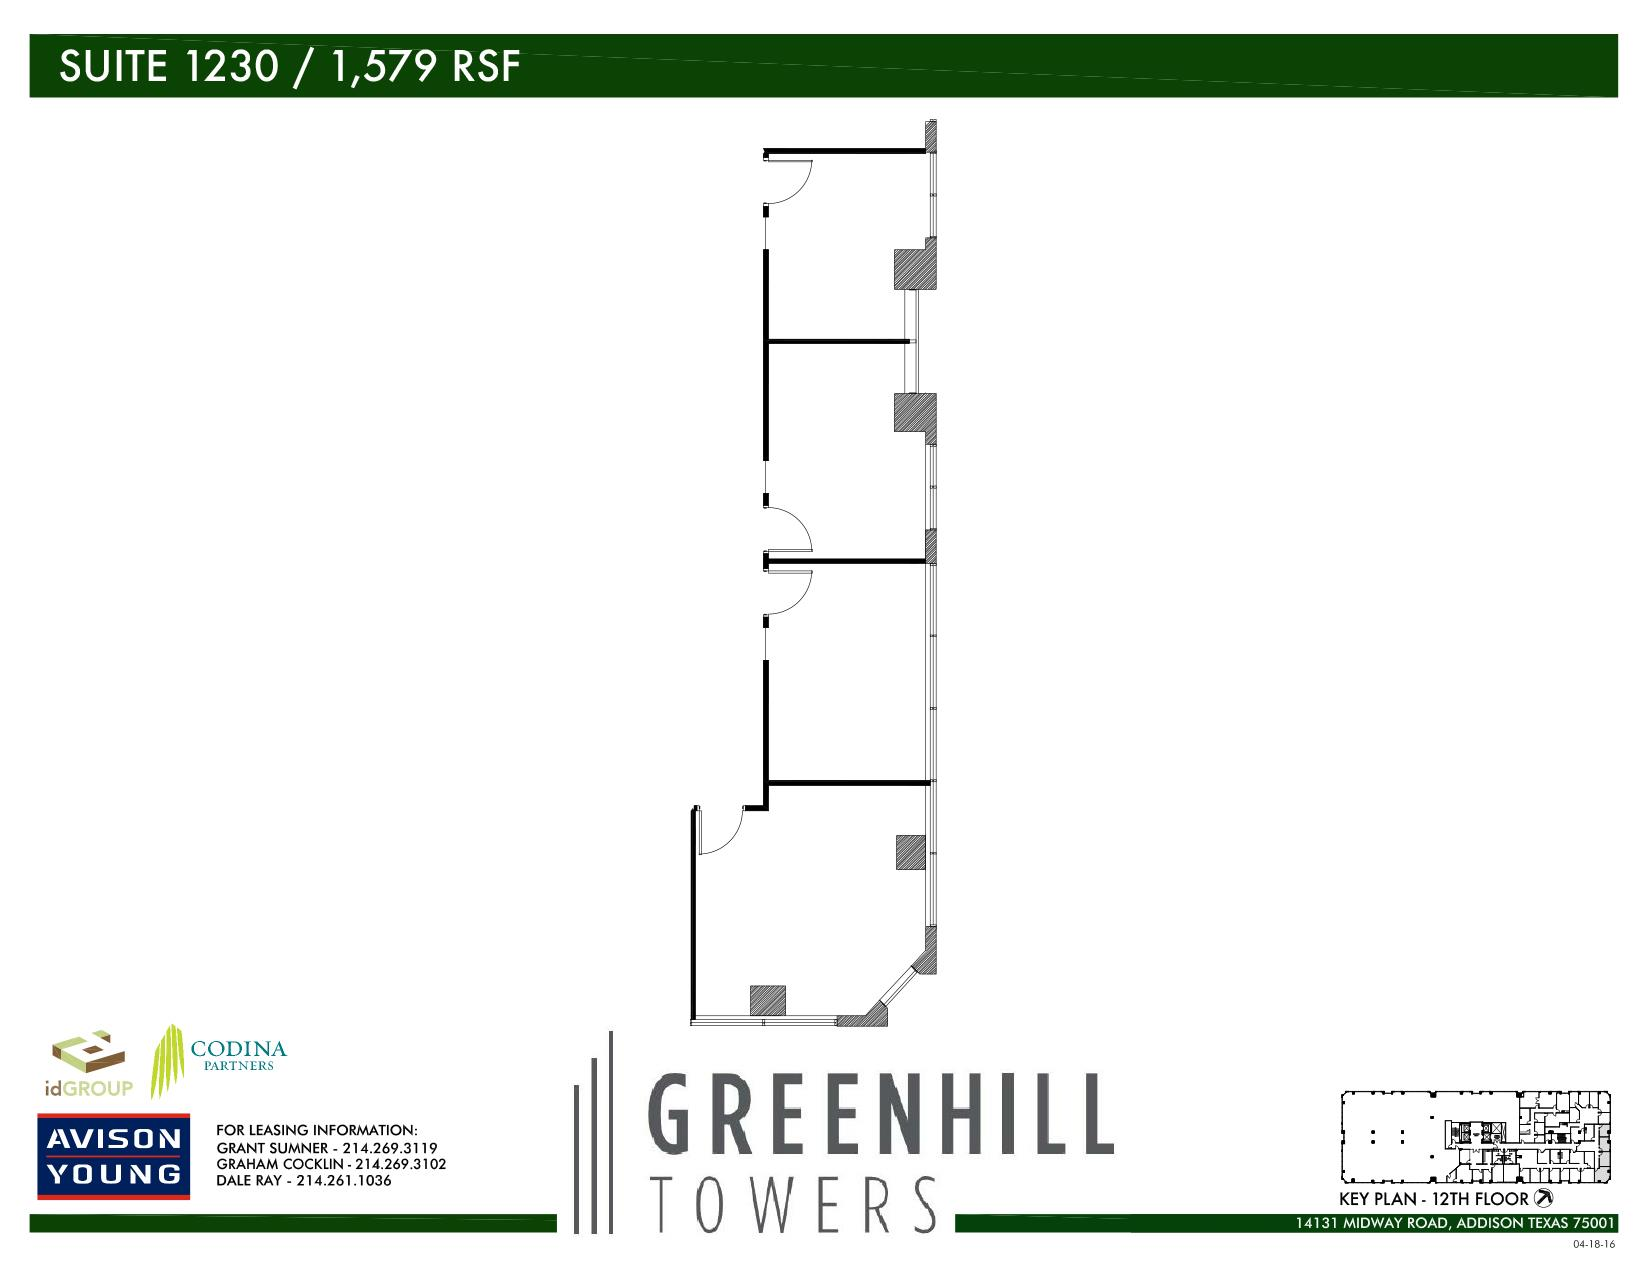 Codina Partners | Greenhill Towers - Suite 1230